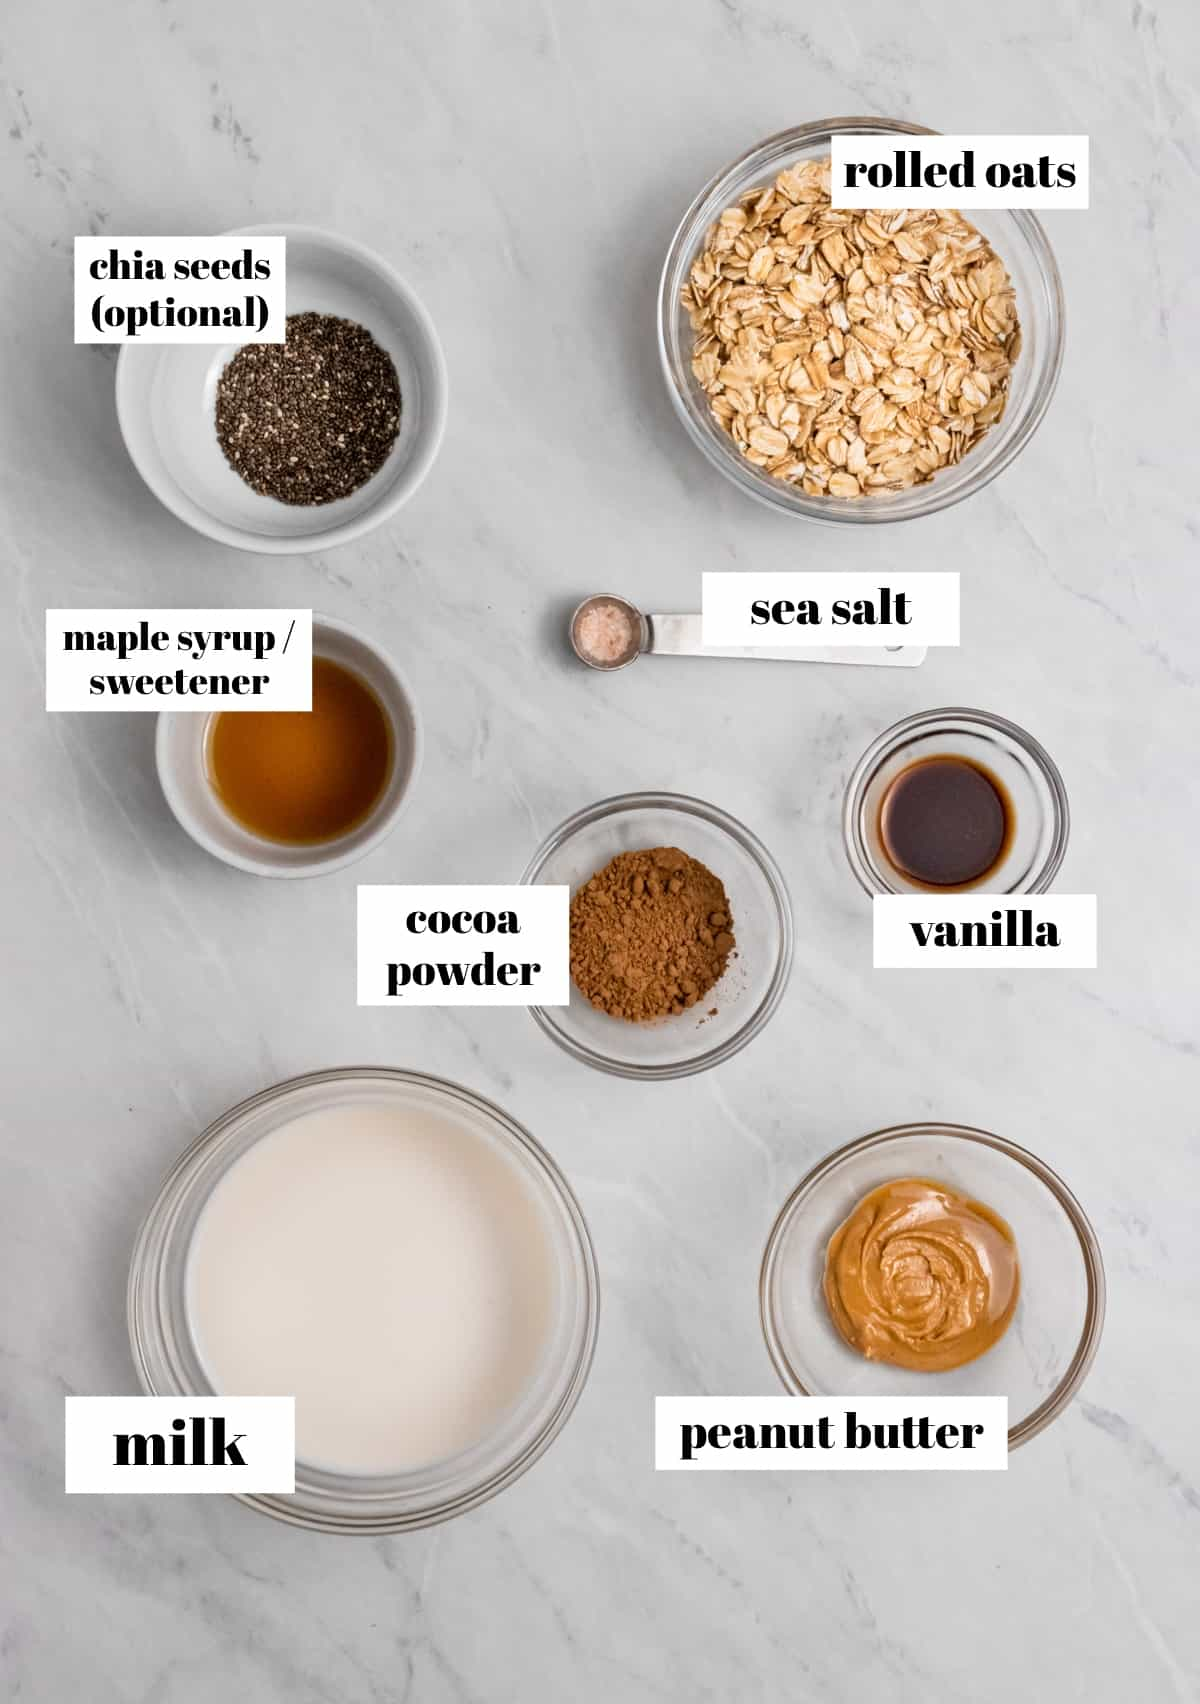 Rolled oats, cocoa powder, maple, and other ingredients in bowls on counter.